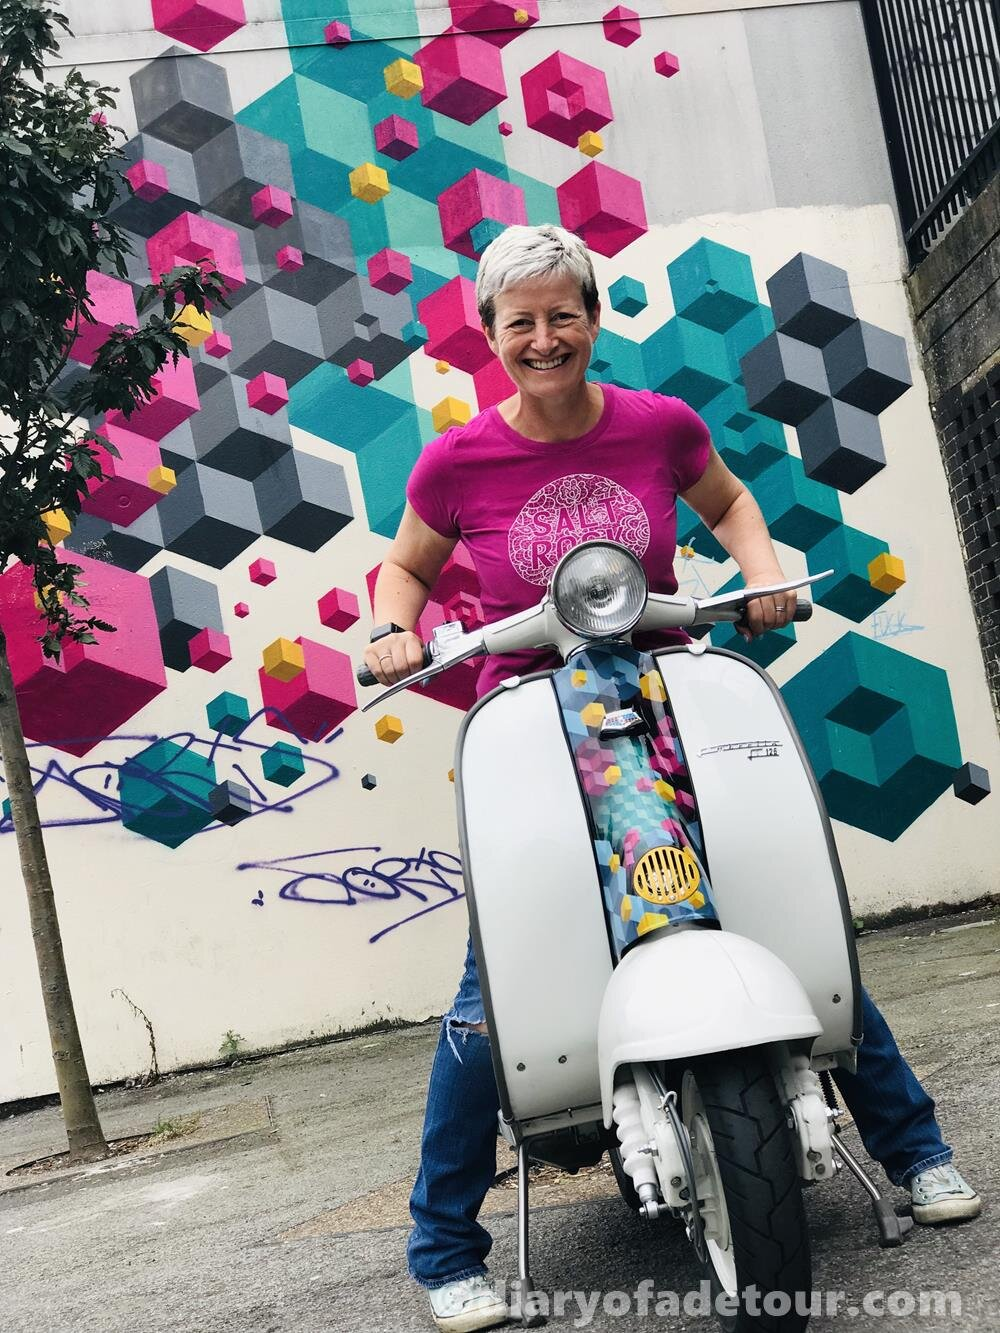 Ali-Richards-Lambretta-street-art-scooter.jpg